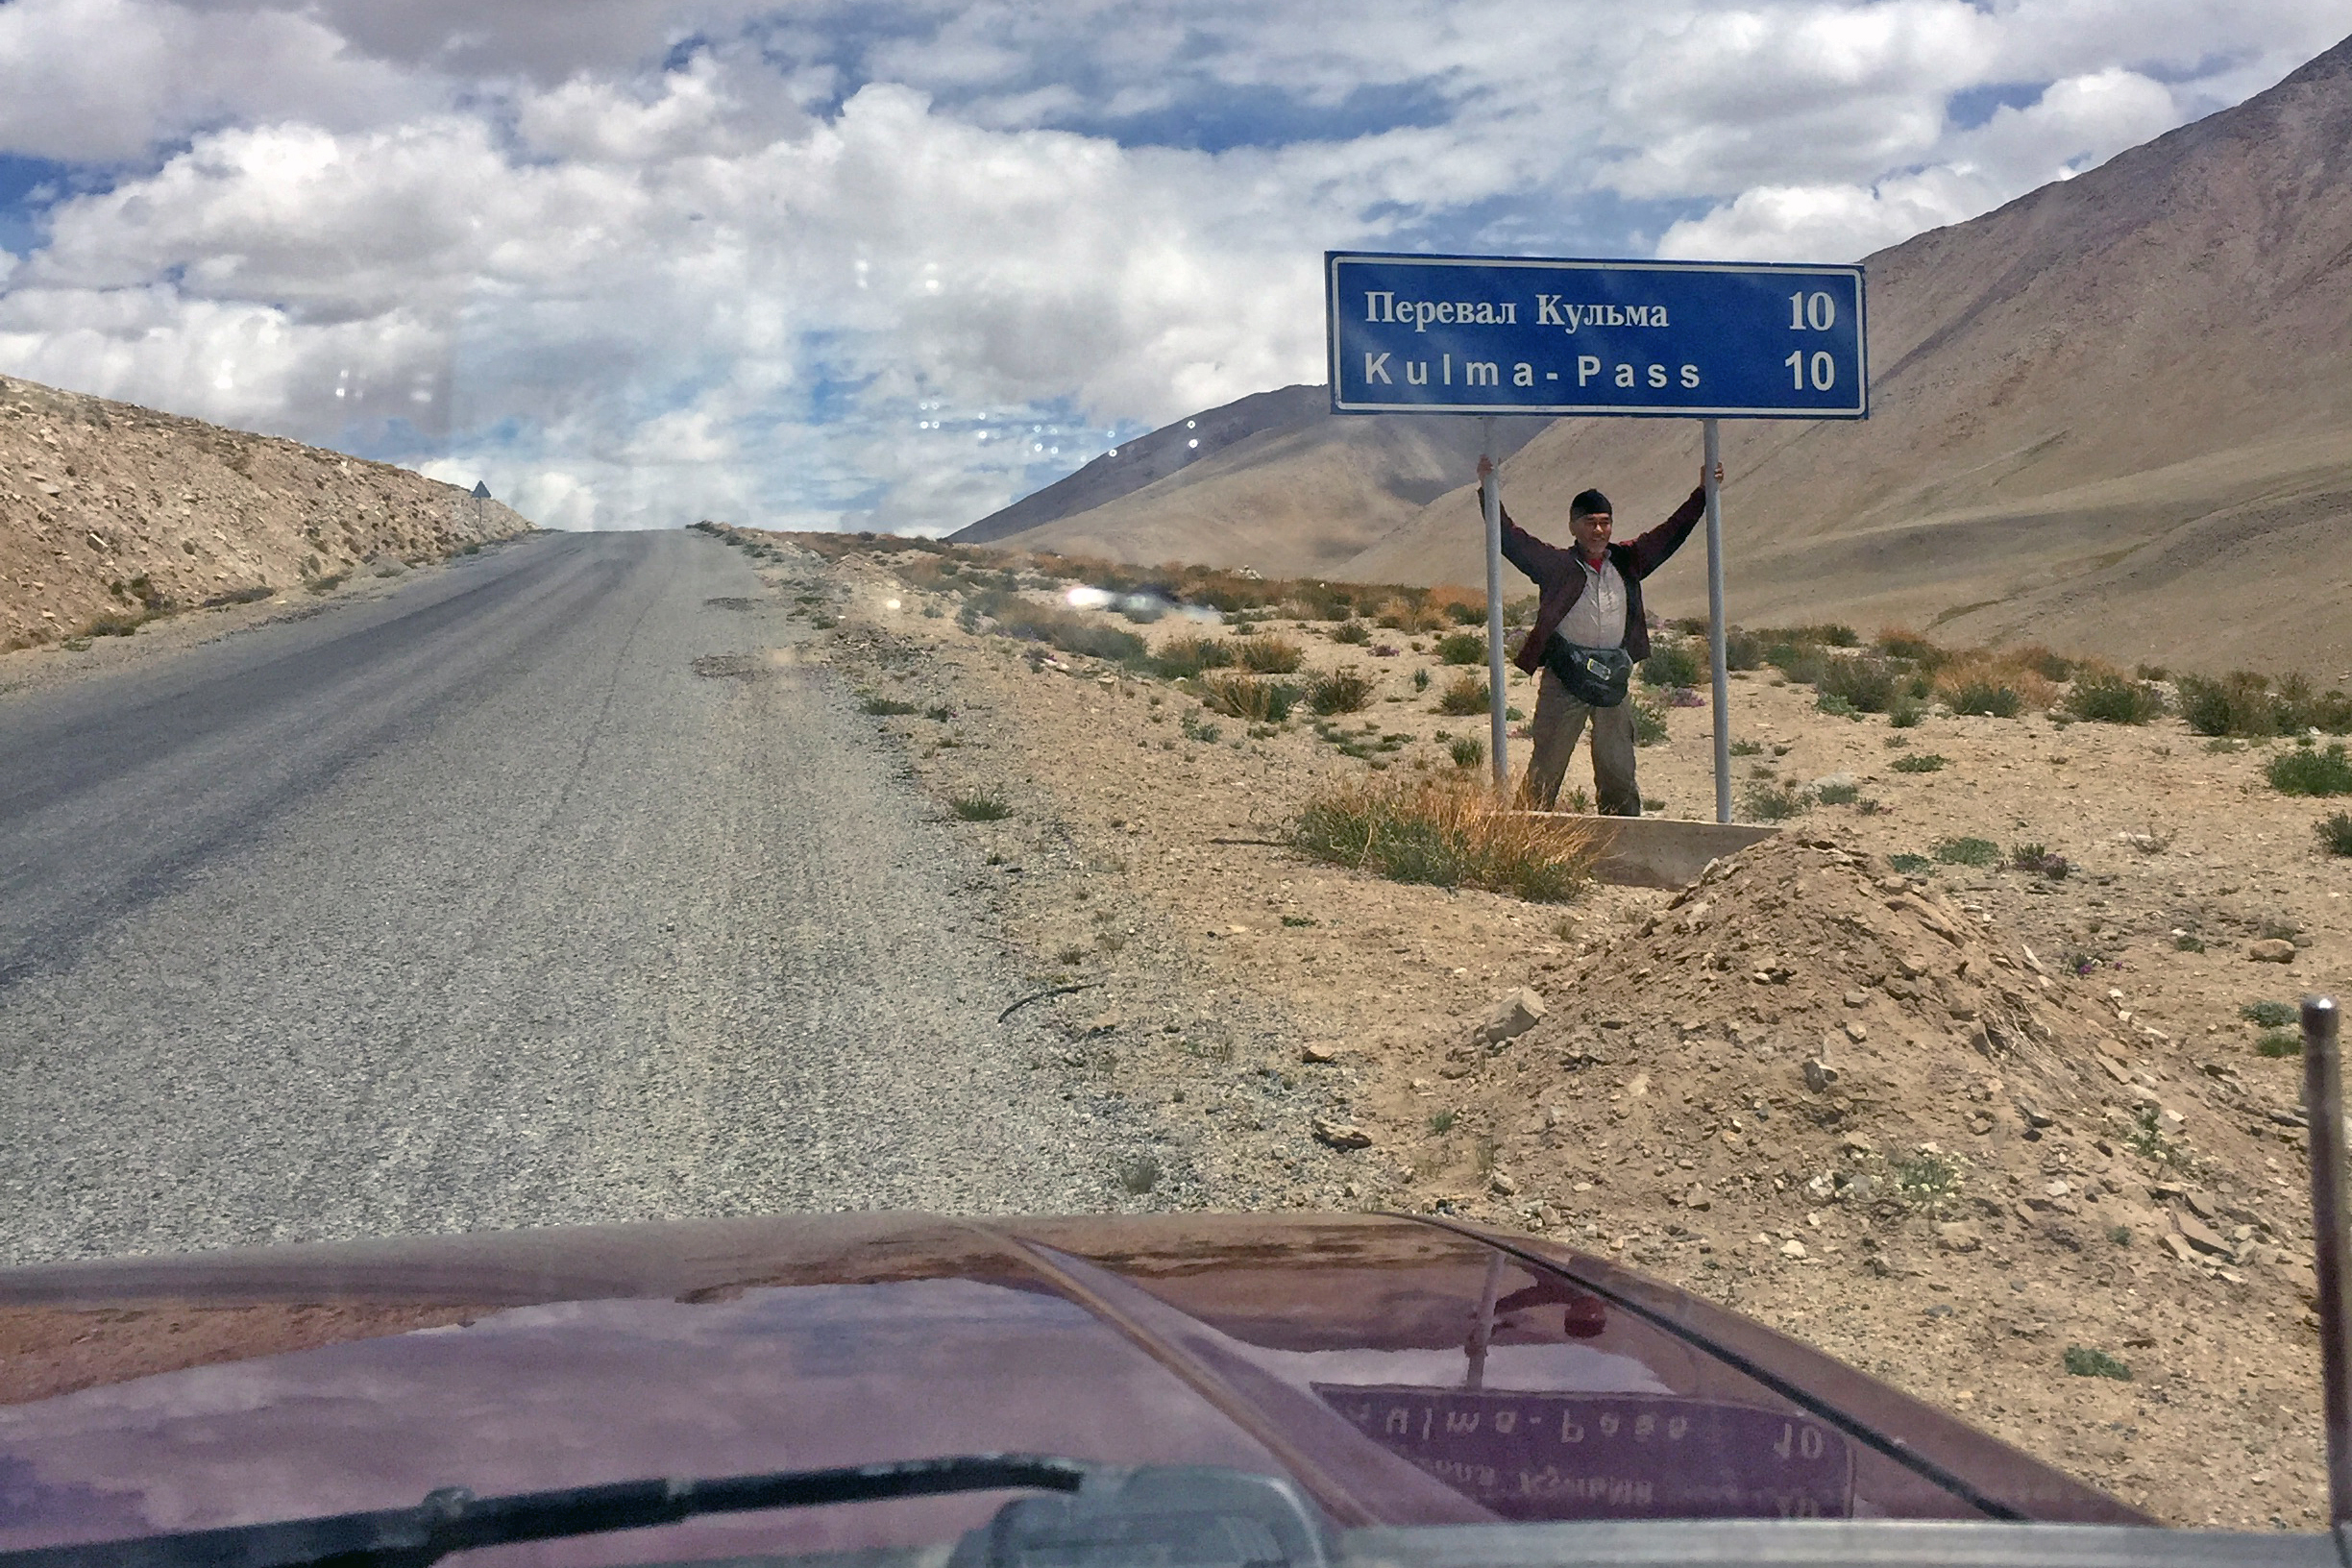 A sign announcing the 10km mark to the Kulma Pass from the Tajik side.